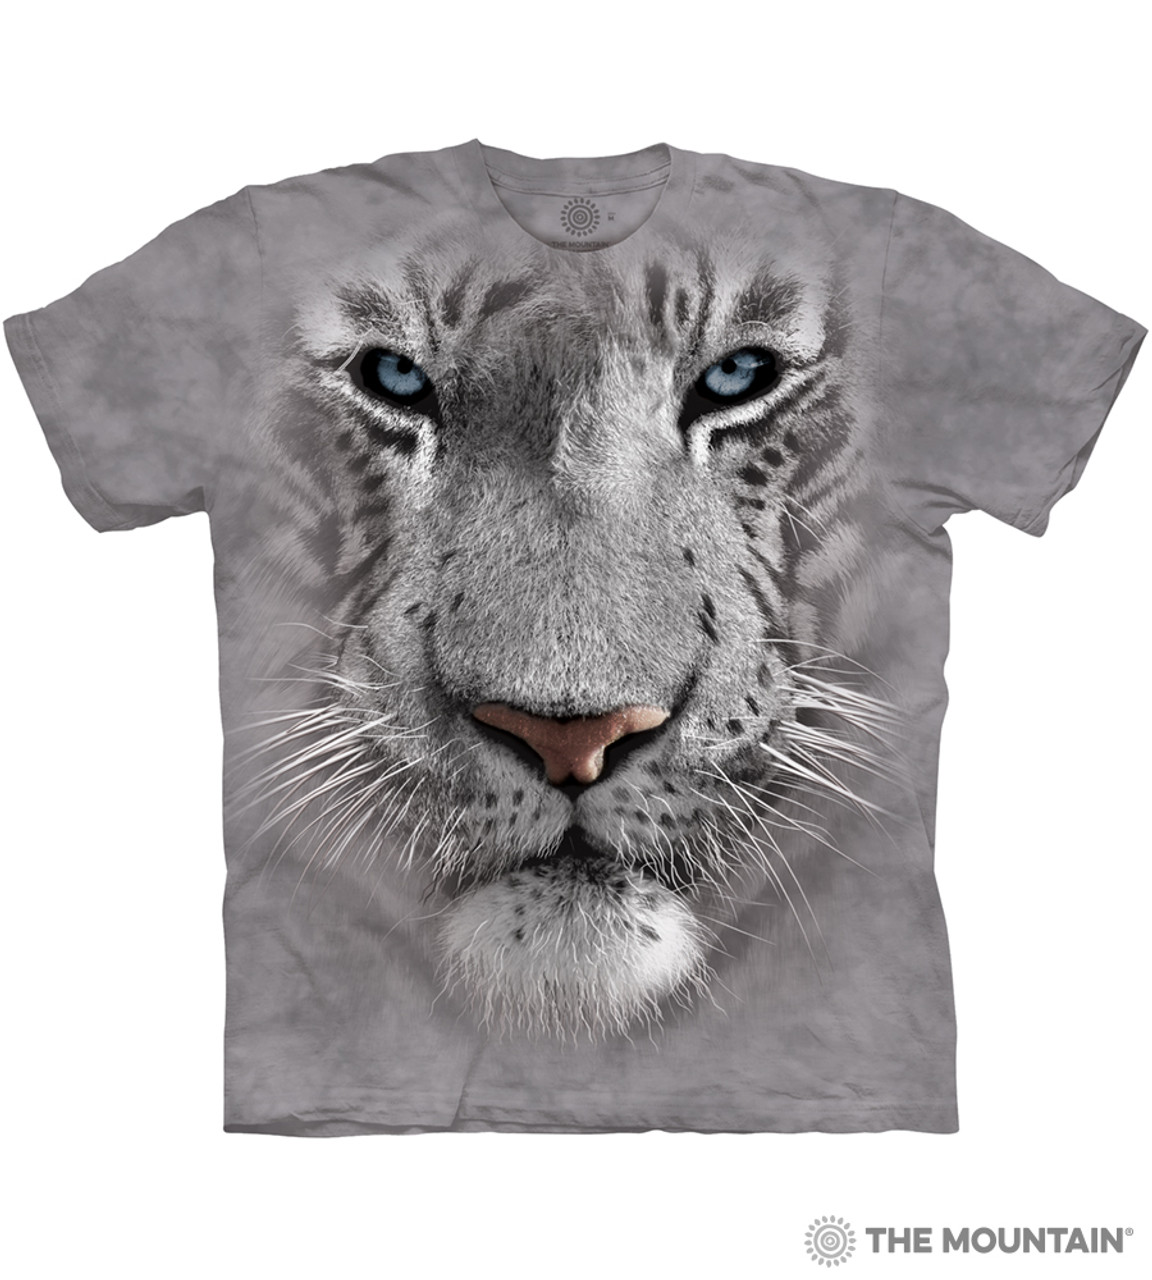 6873ecf825eb White Tiger Face - The Mountain Adult Unisex T-Shirt